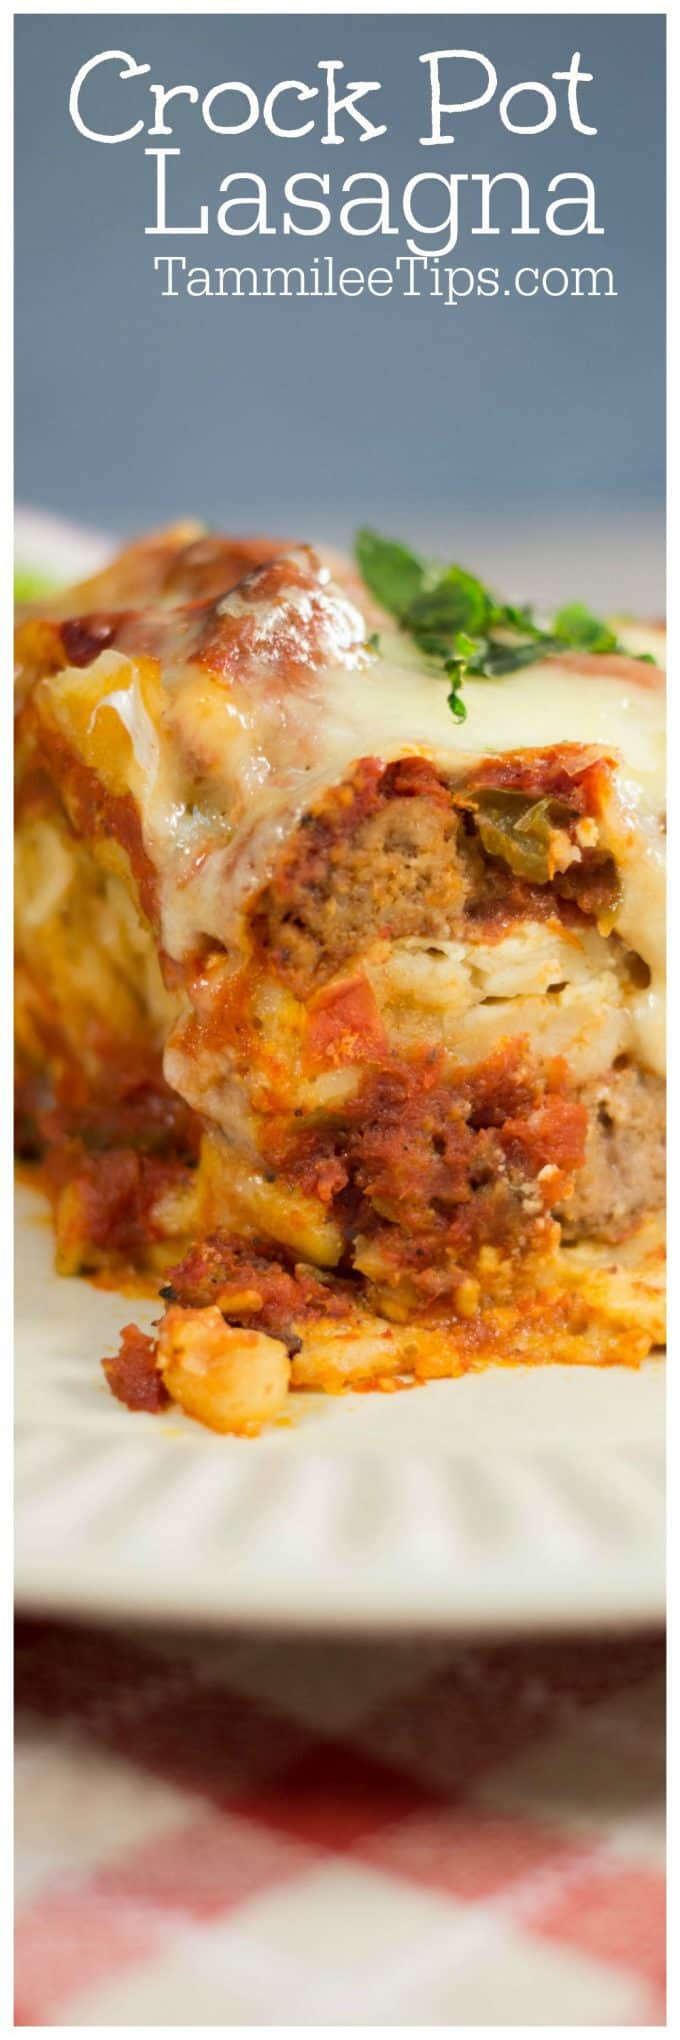 Easy Slow Cooker Crock Pot Lasagna Recipe The Entire Family Will Love.  Ground Beef,